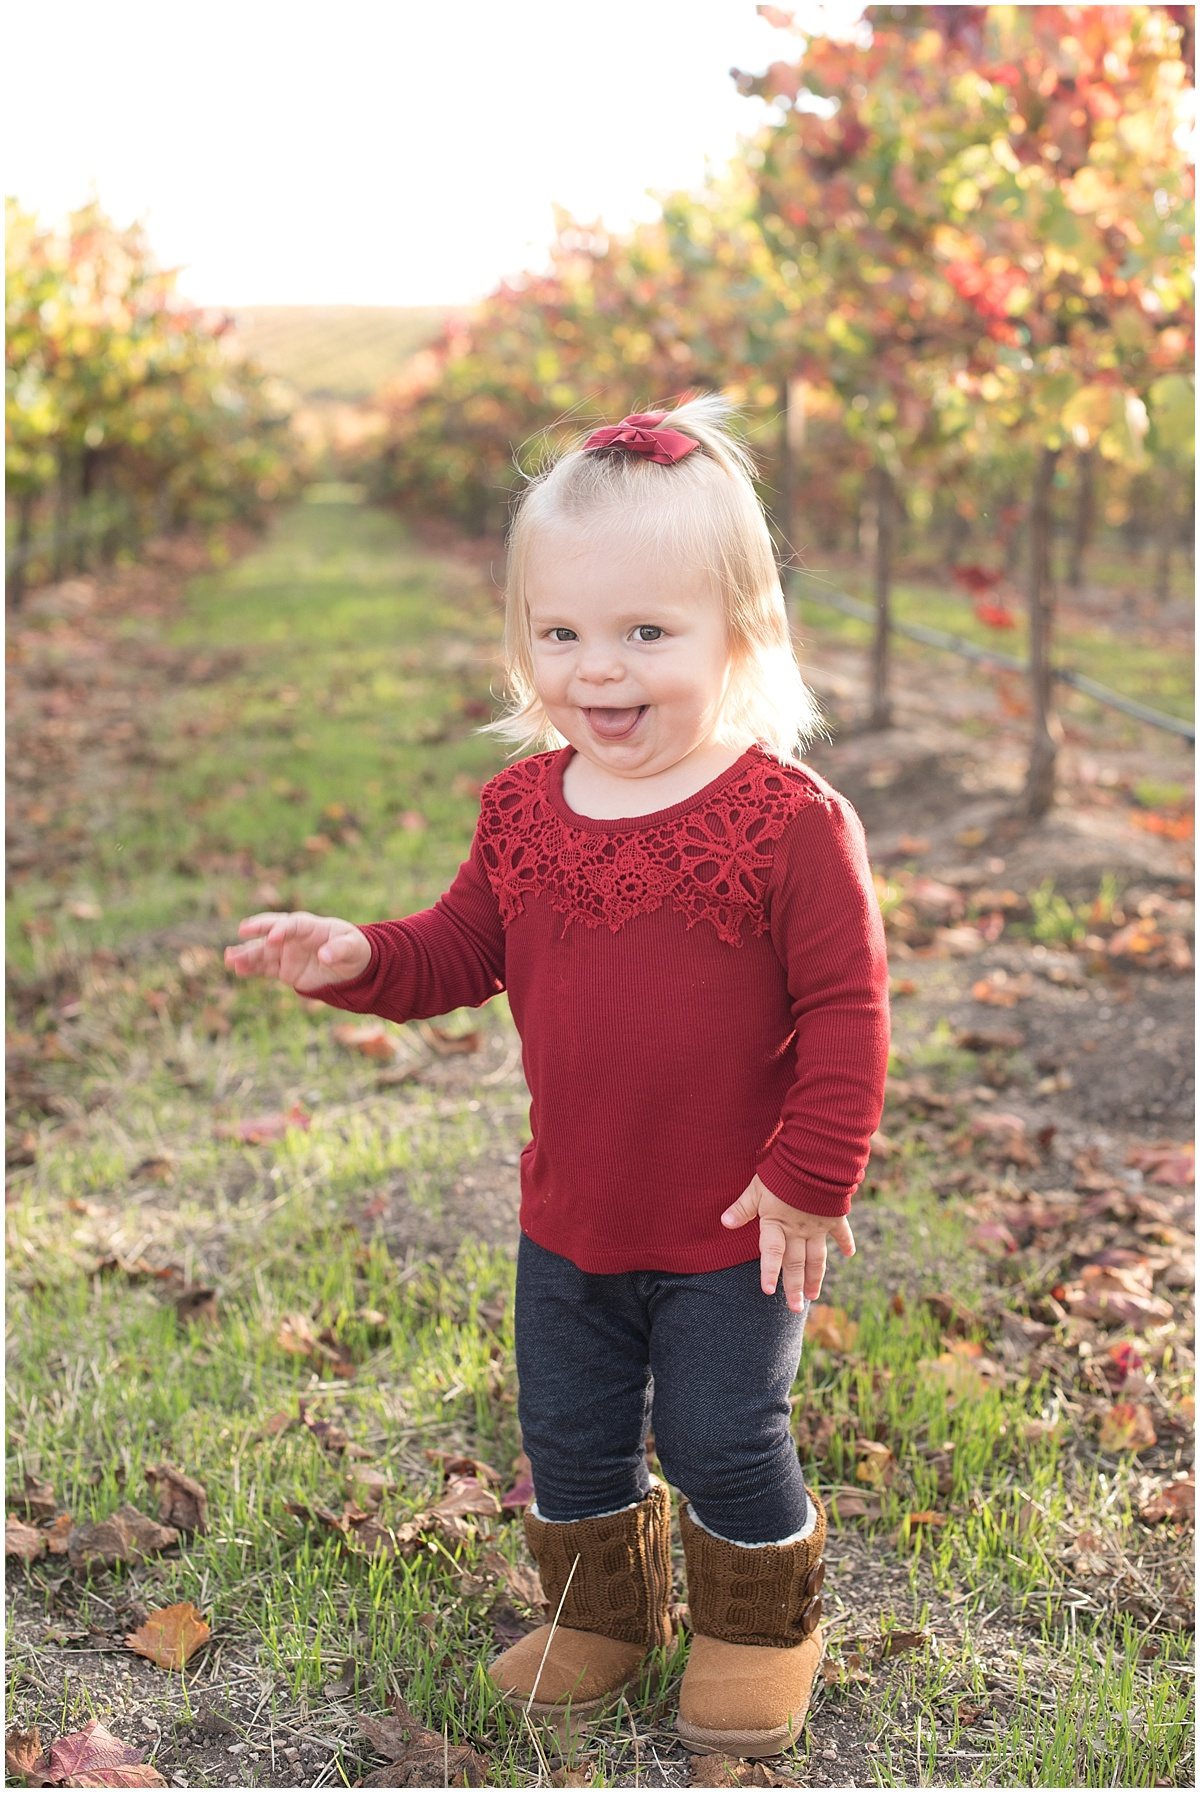 Ruby family photos at Pomar Junction in the fall at Paso Robles, CA